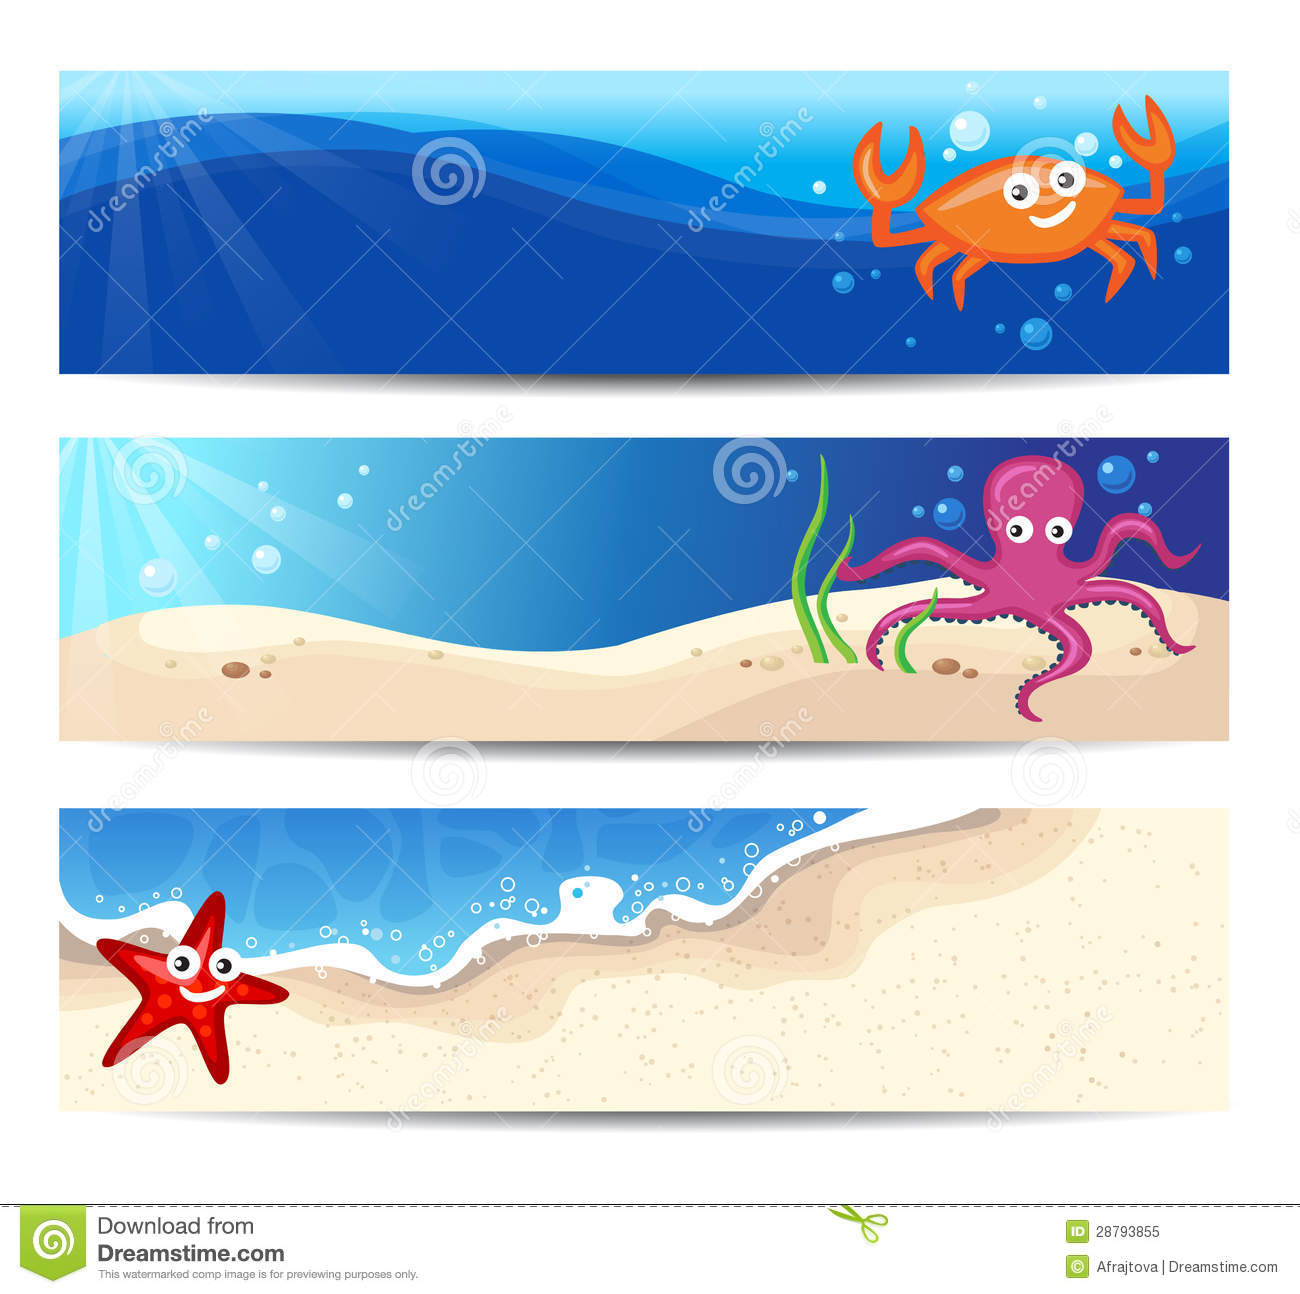 More similar stock images of banners with sea creatures